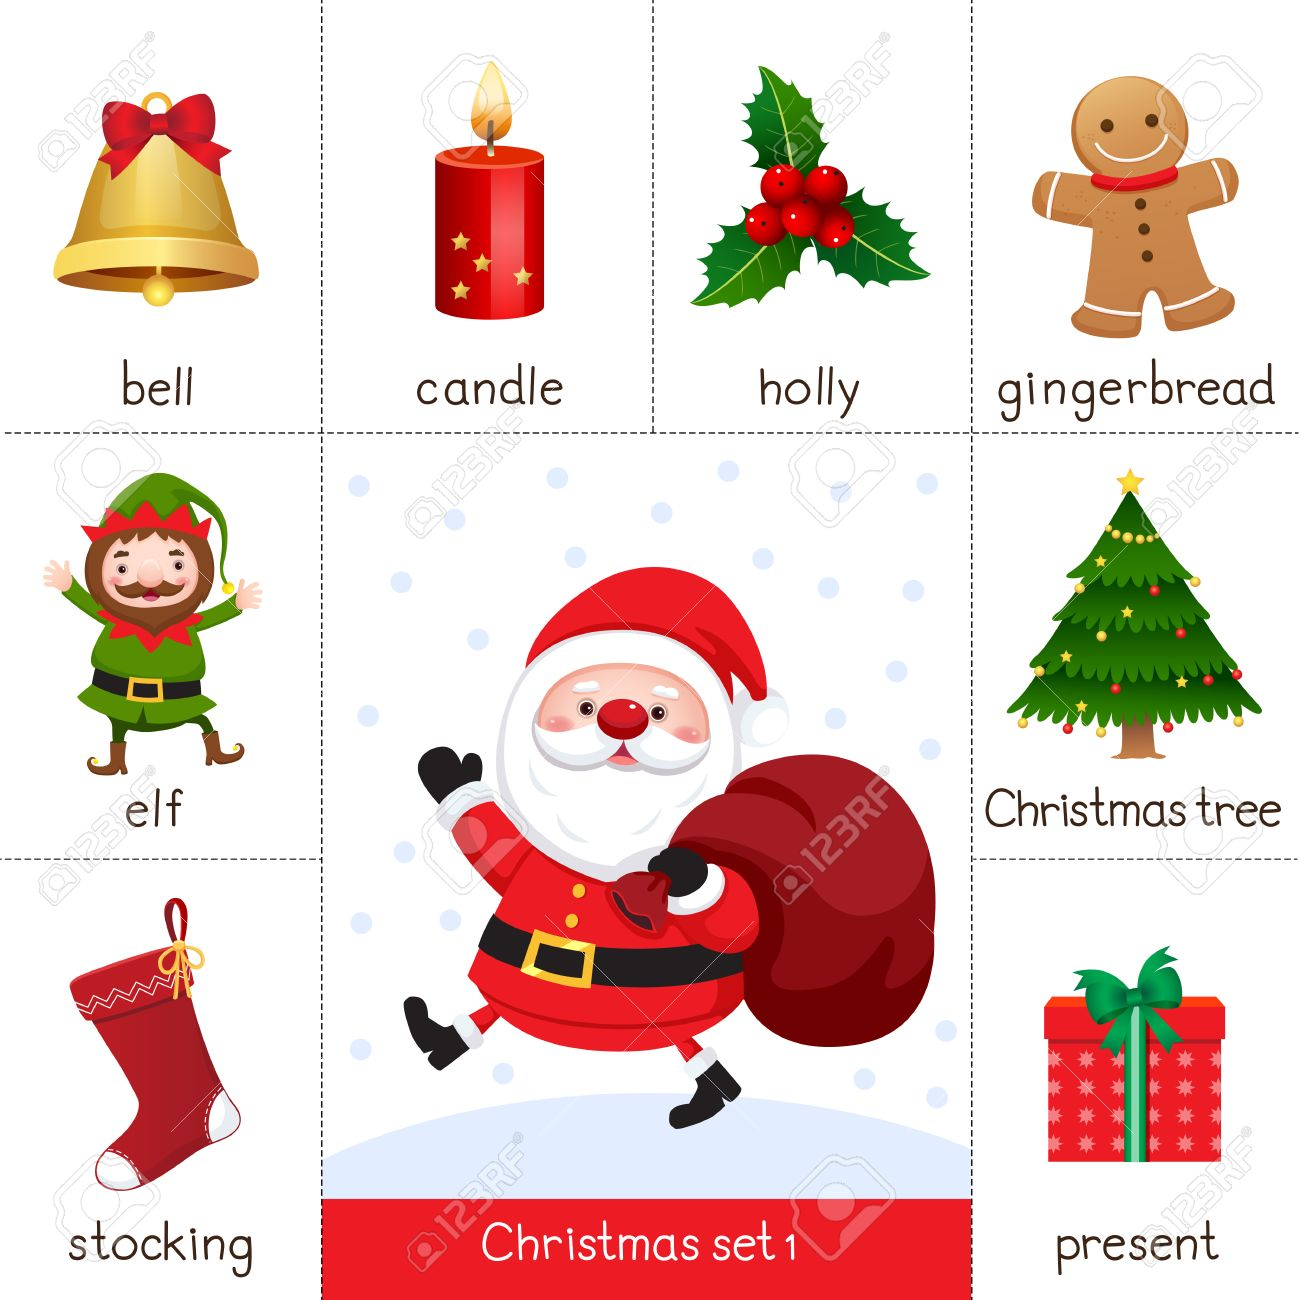 photograph relating to Printable Santa Claus named Case in point of printable flash card for Xmas established and Santa..